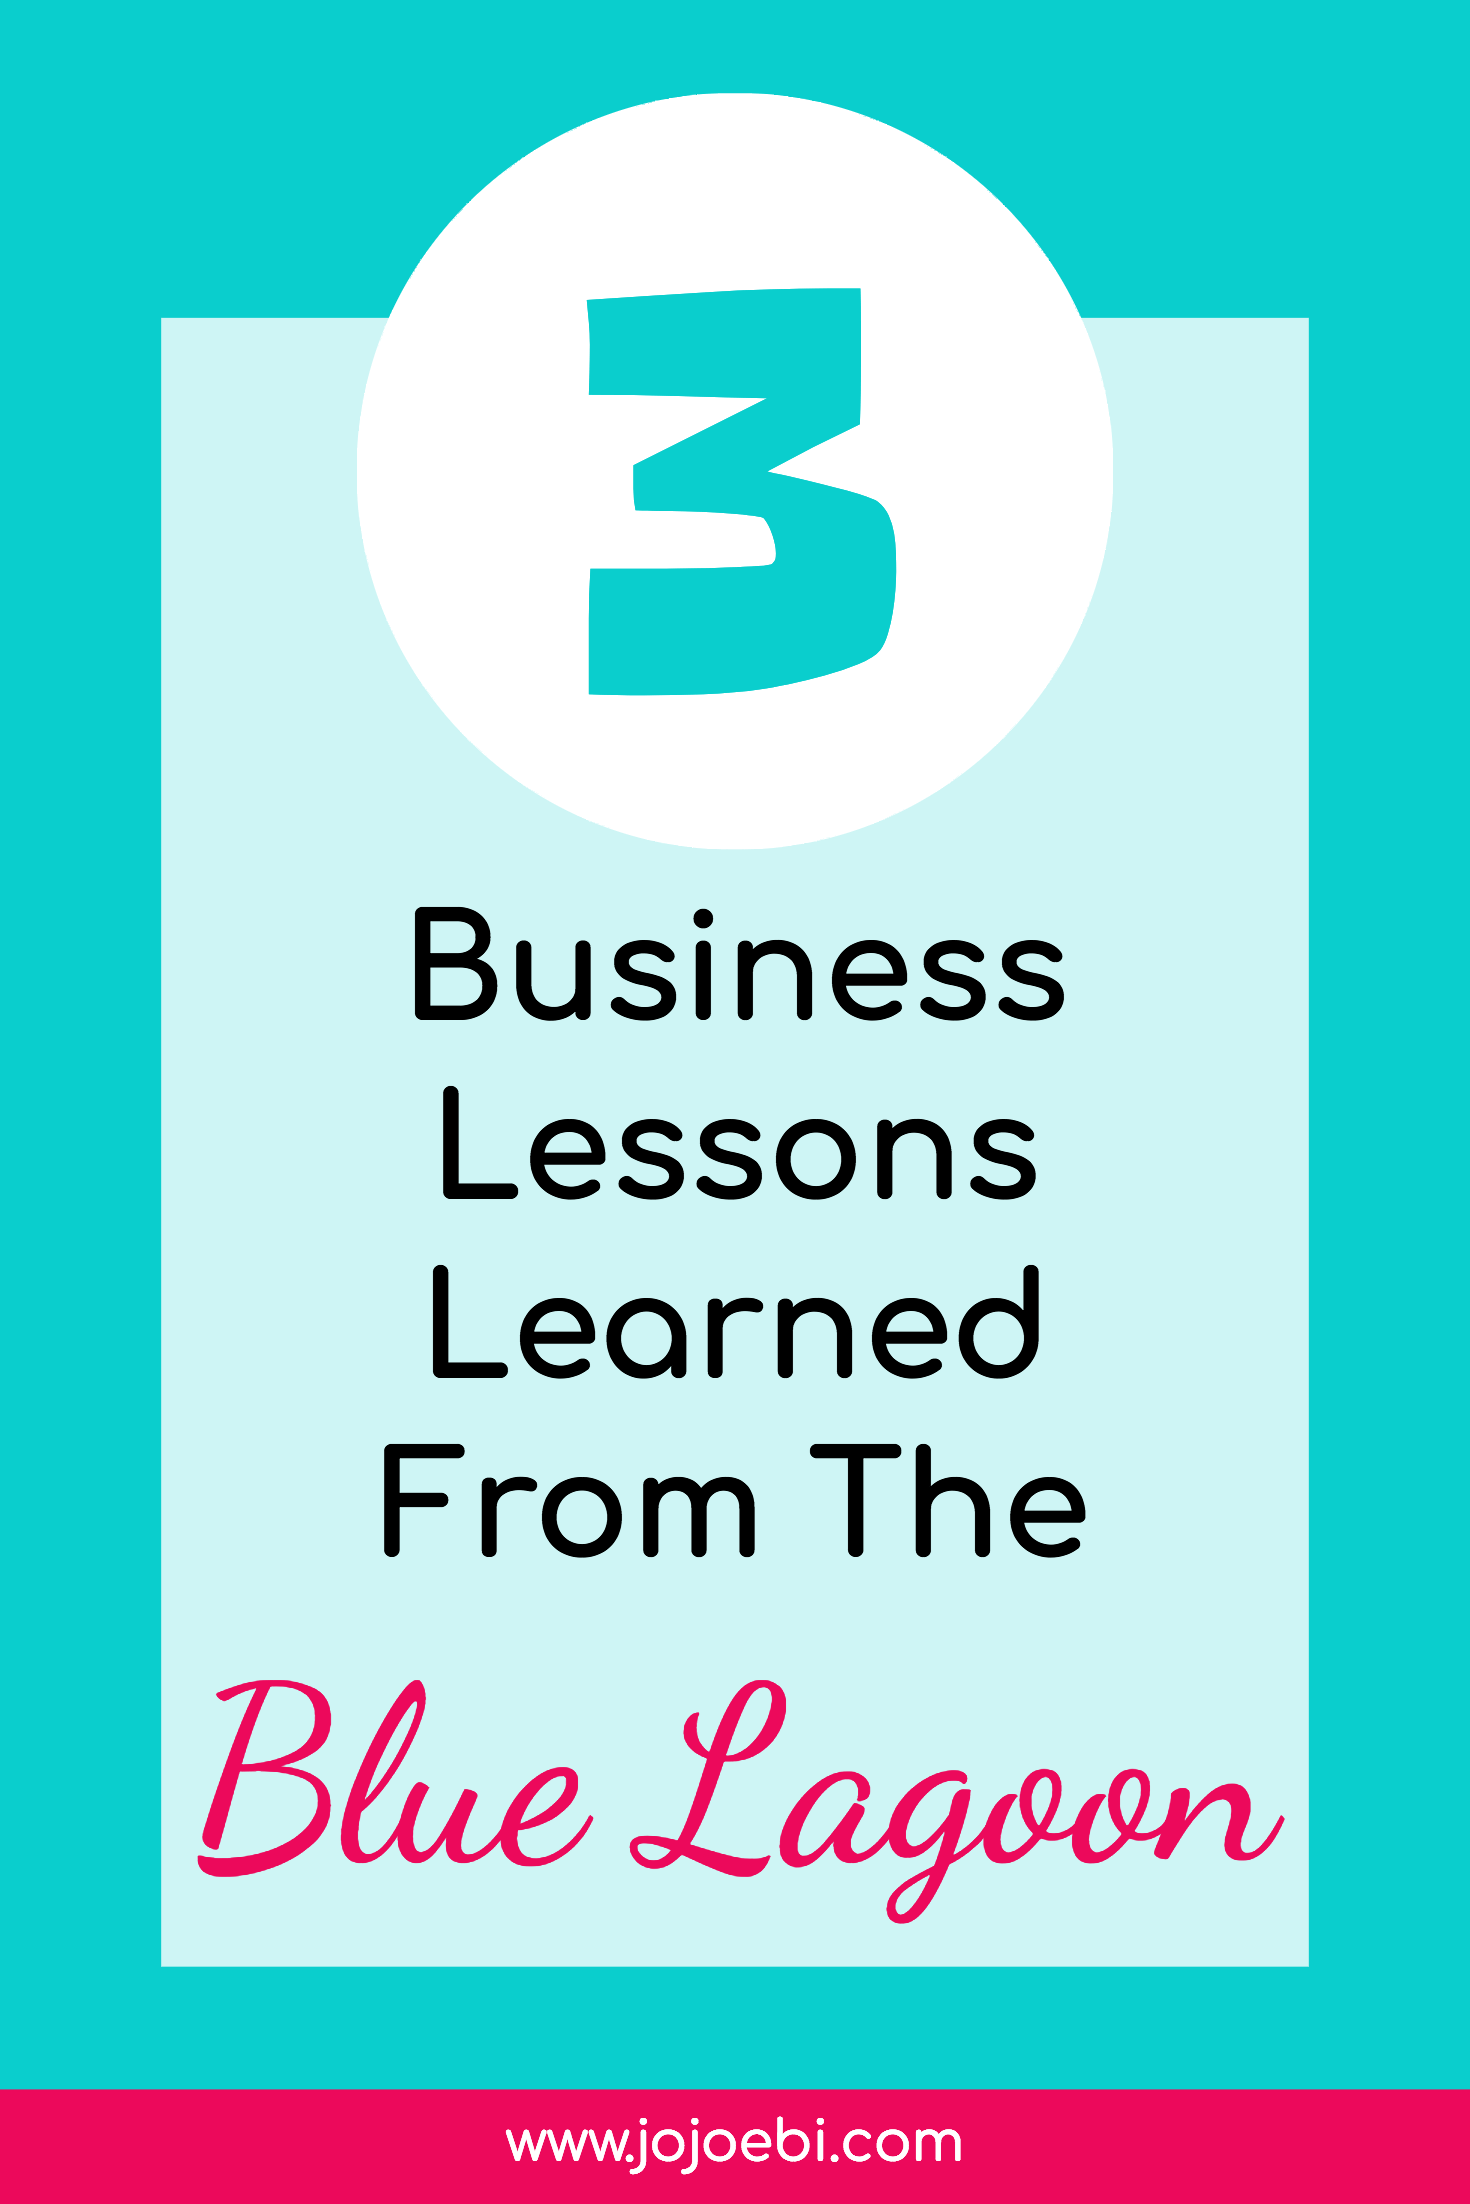 3 Business Lessons Learned From The Blue Lagoon | business lessons | #kaizen #business #bluelagoon